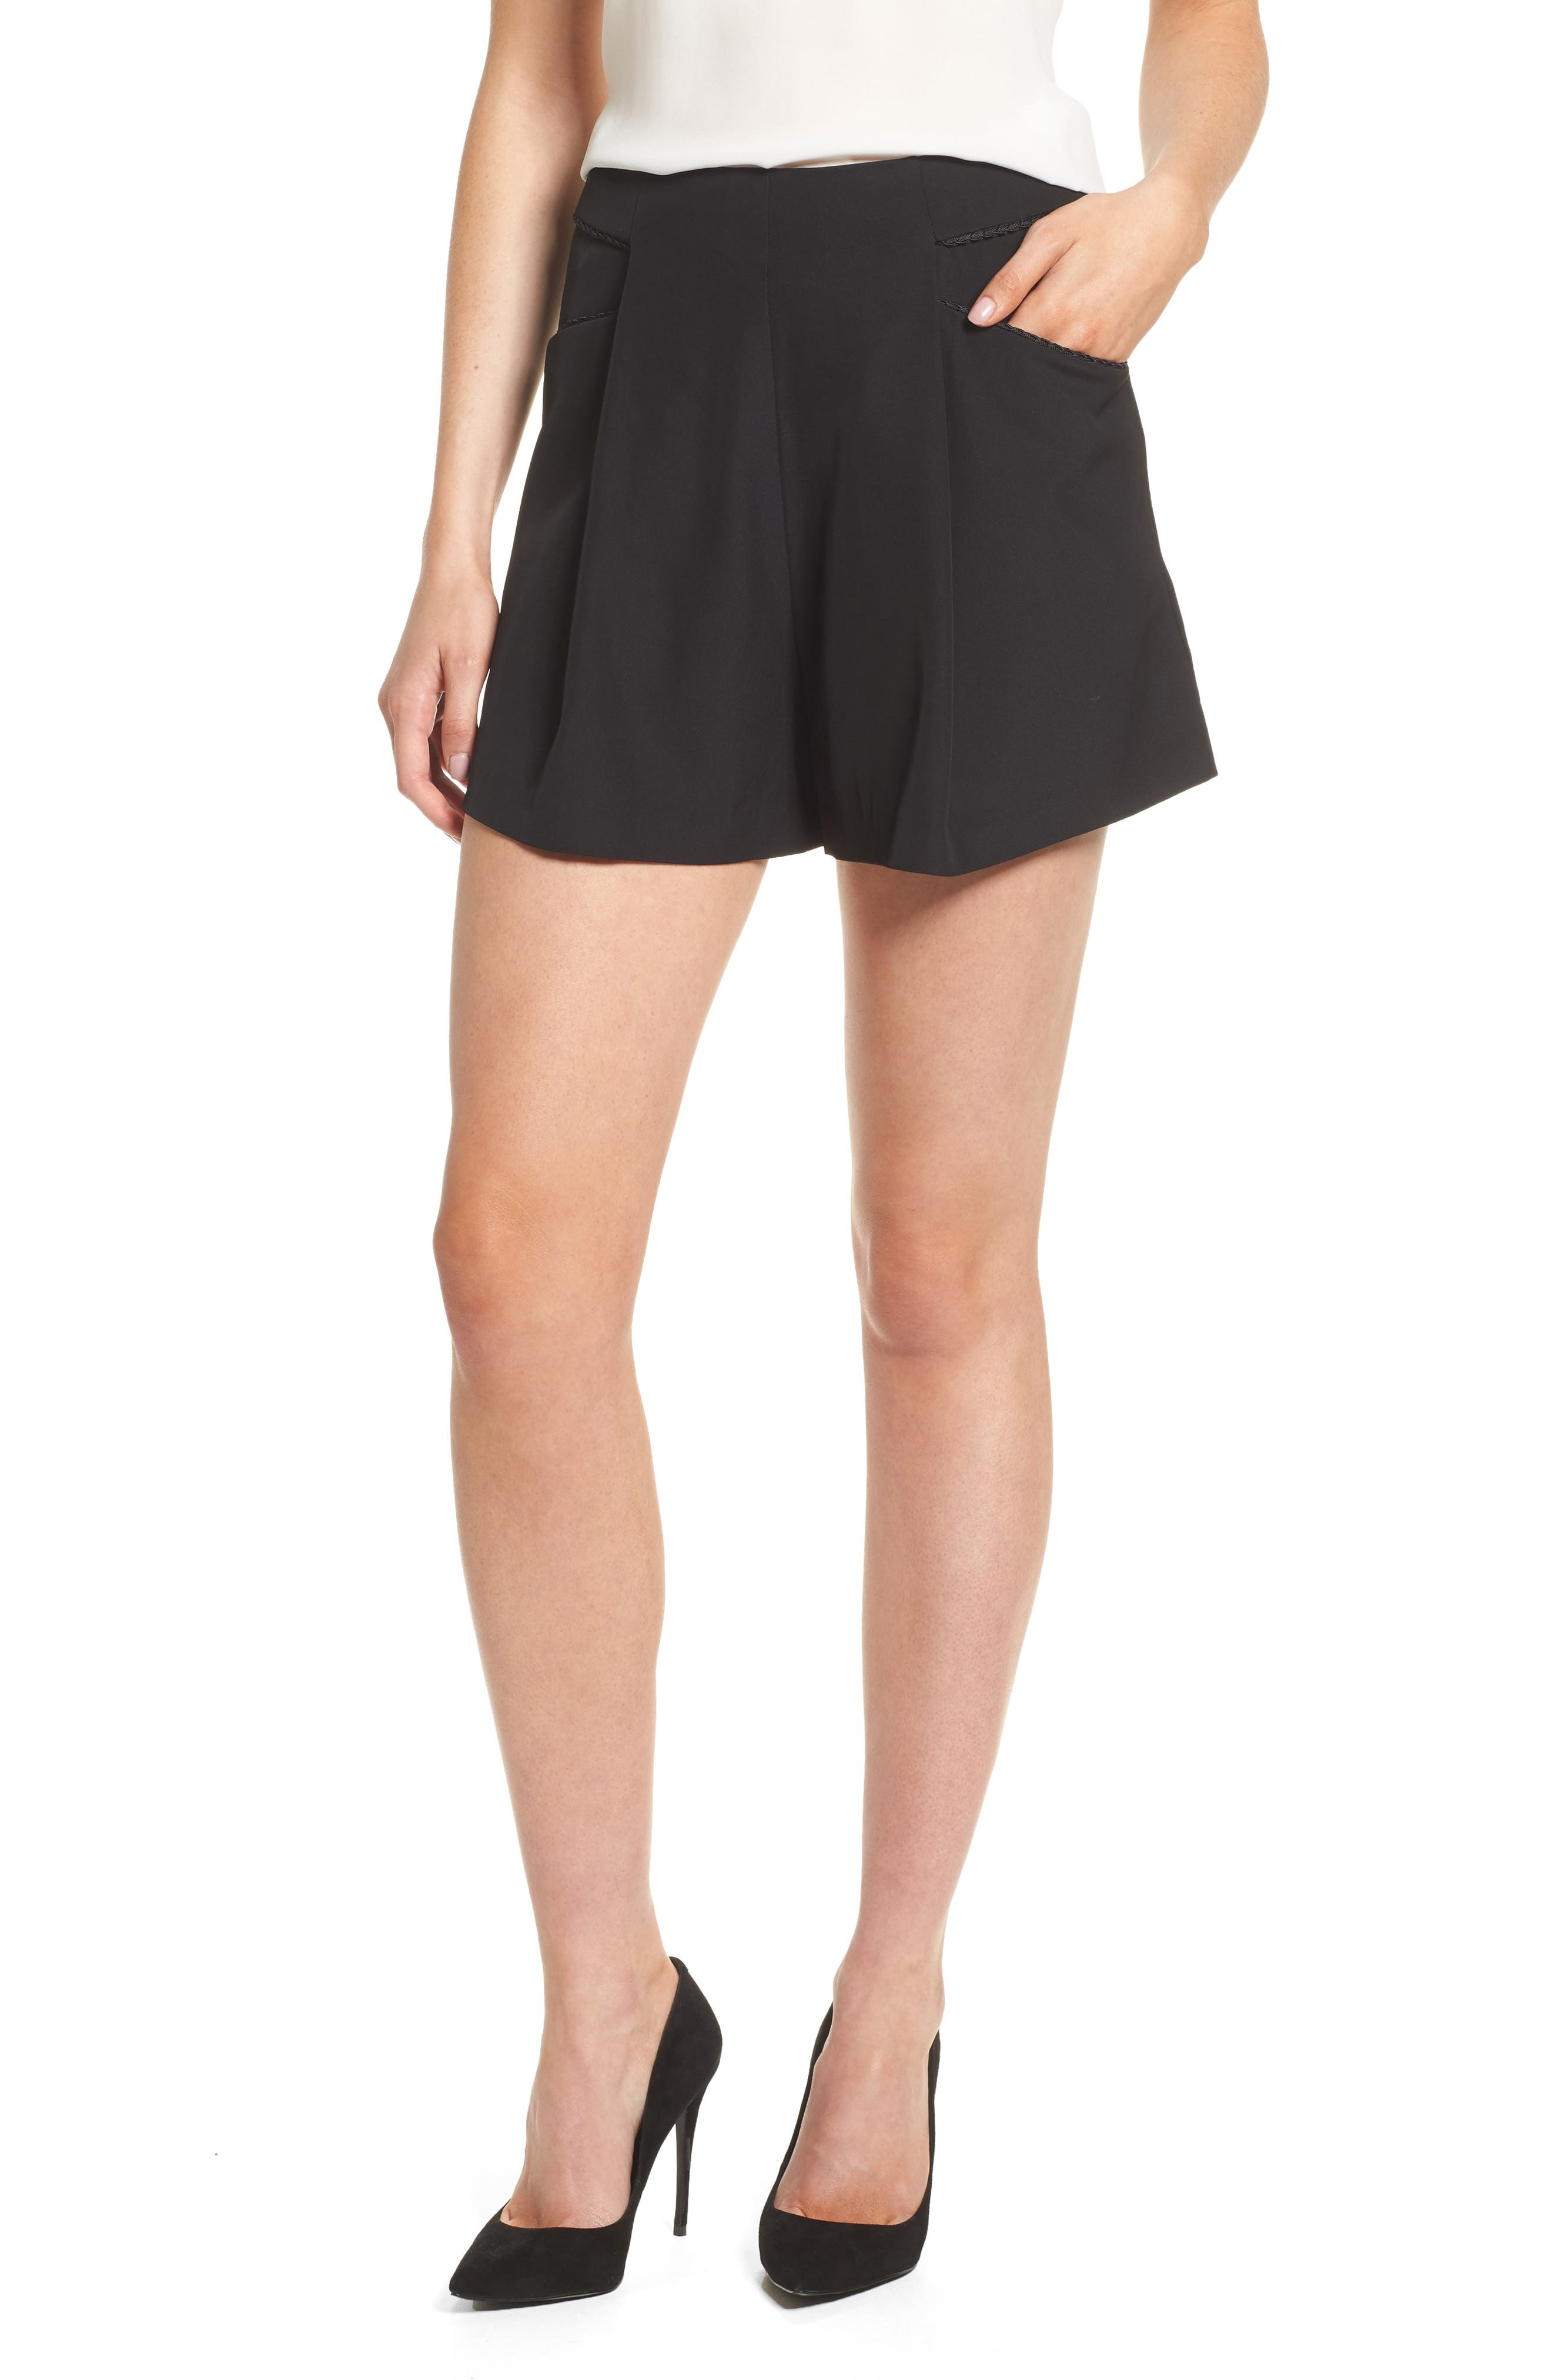 Ceremony High Waist Shorts,                         Main,                         color, Black